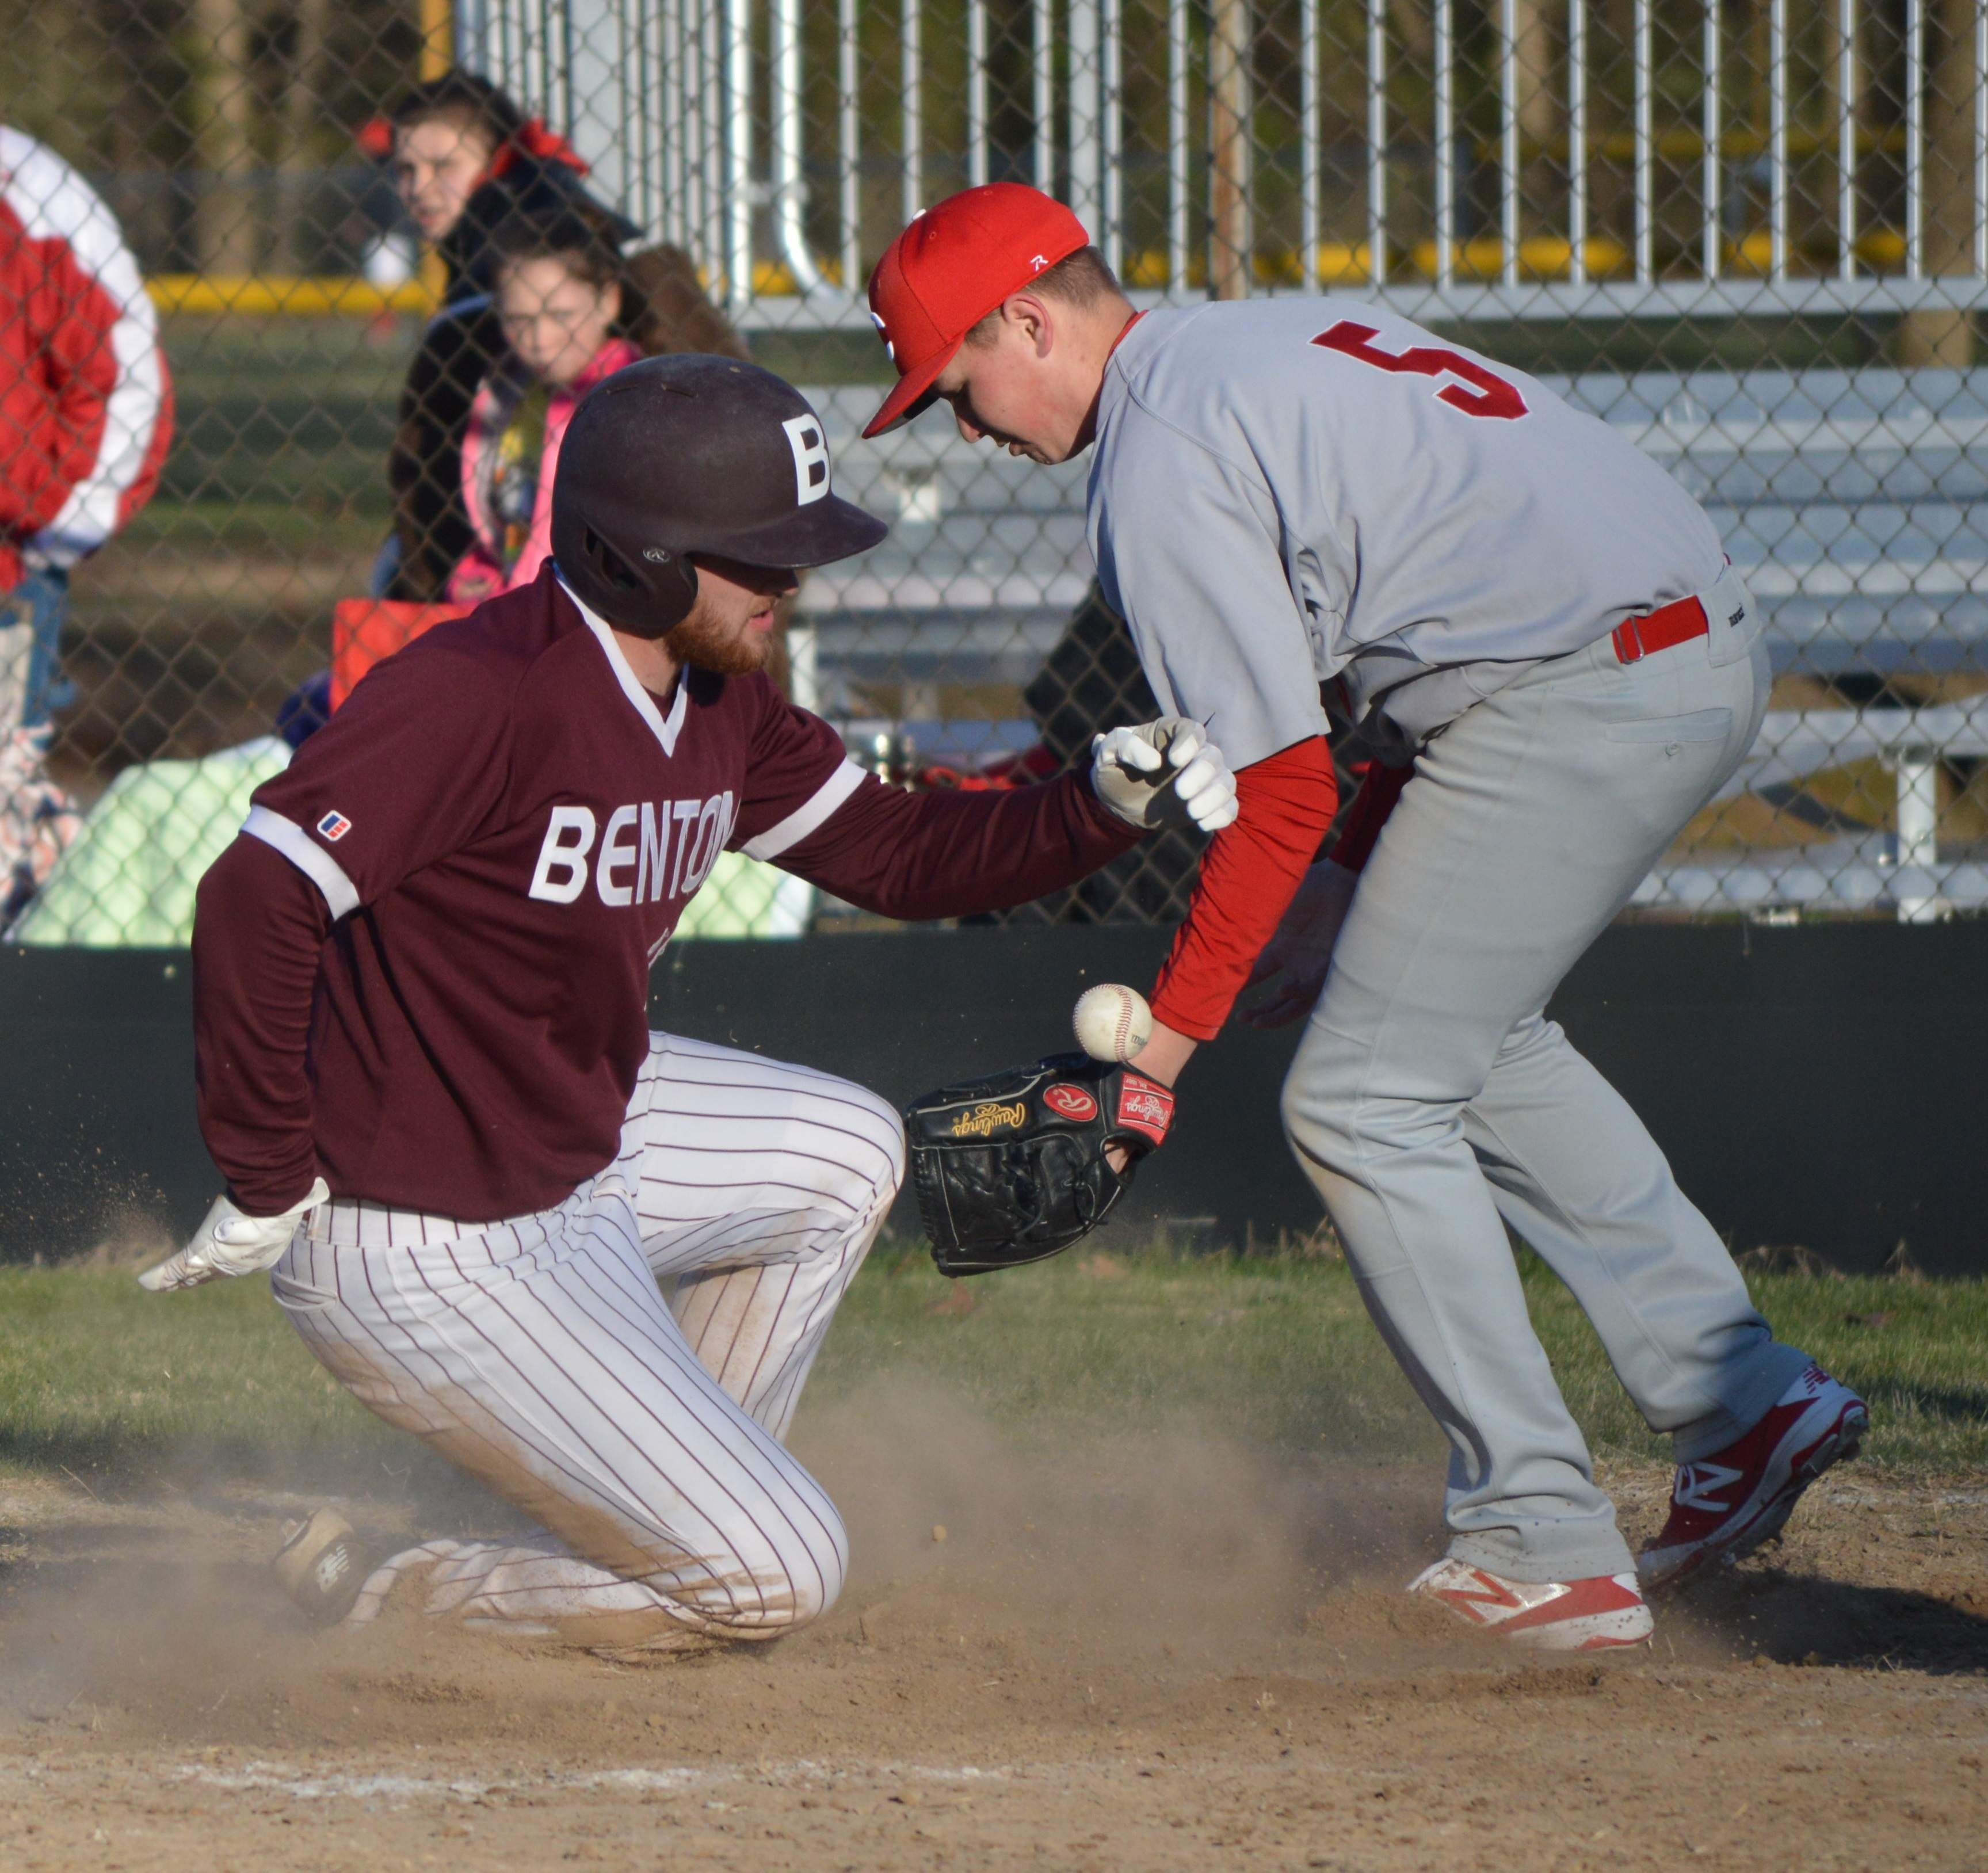 Senior Bryden Picklesimer (left) slides into home plate Wednesday during the Rangers' season opening 17-7 victory over the Centralia Orphans.